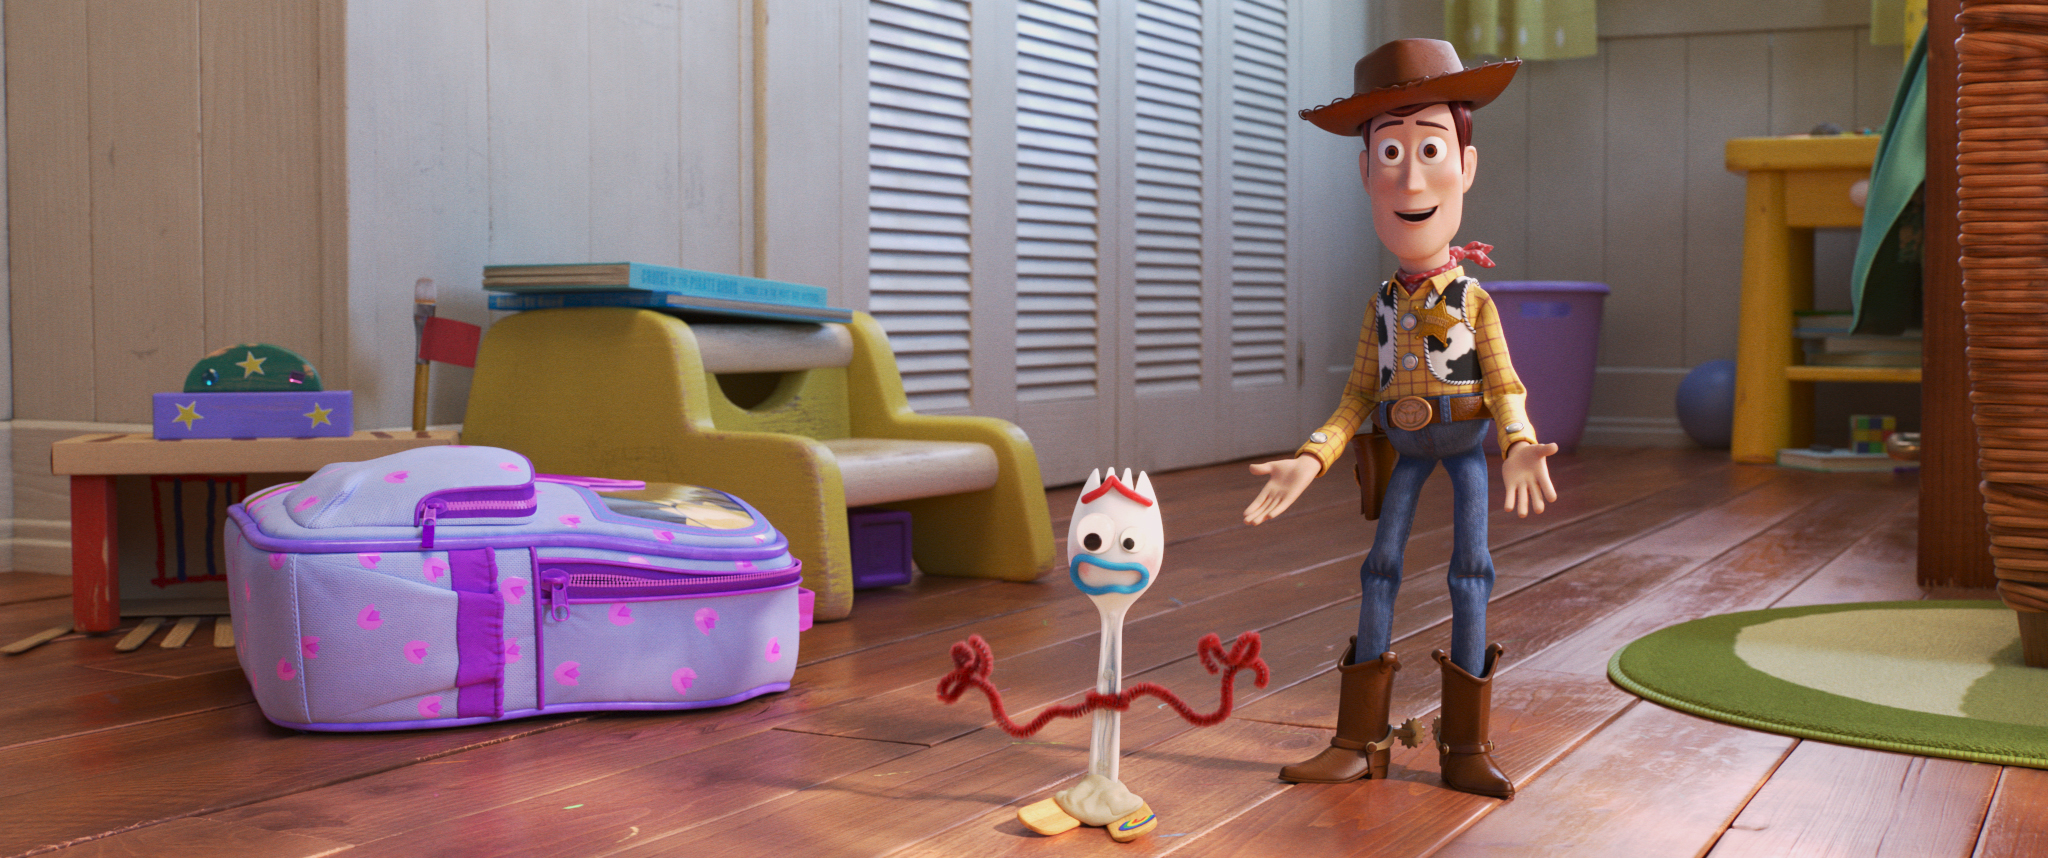 'Hey, gang! This is our new pal and symbol of existential ambivalence!'  ( Courtesy photo / Disney/Pixar)